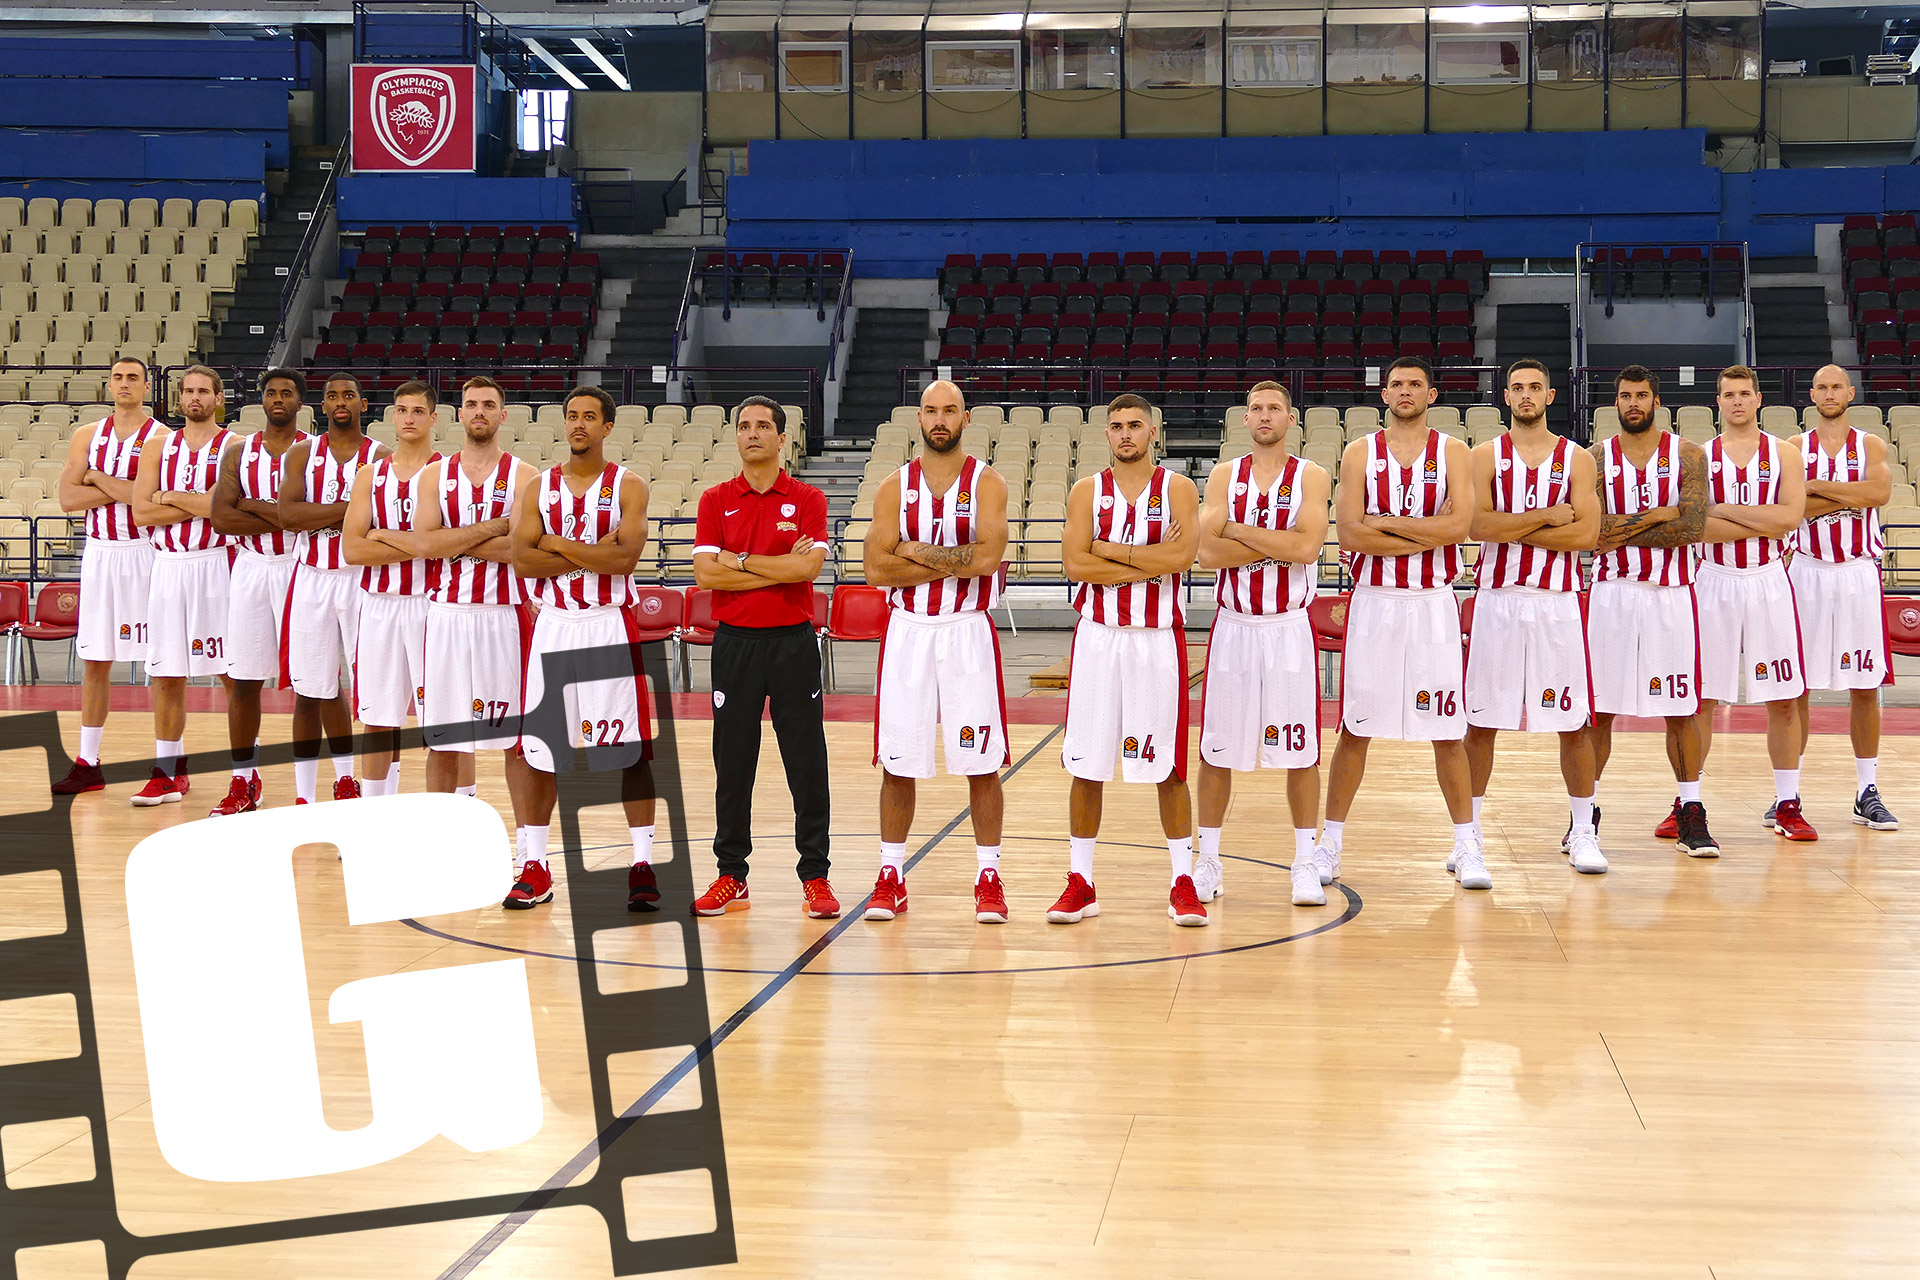 OLYMPIACOS basketball team